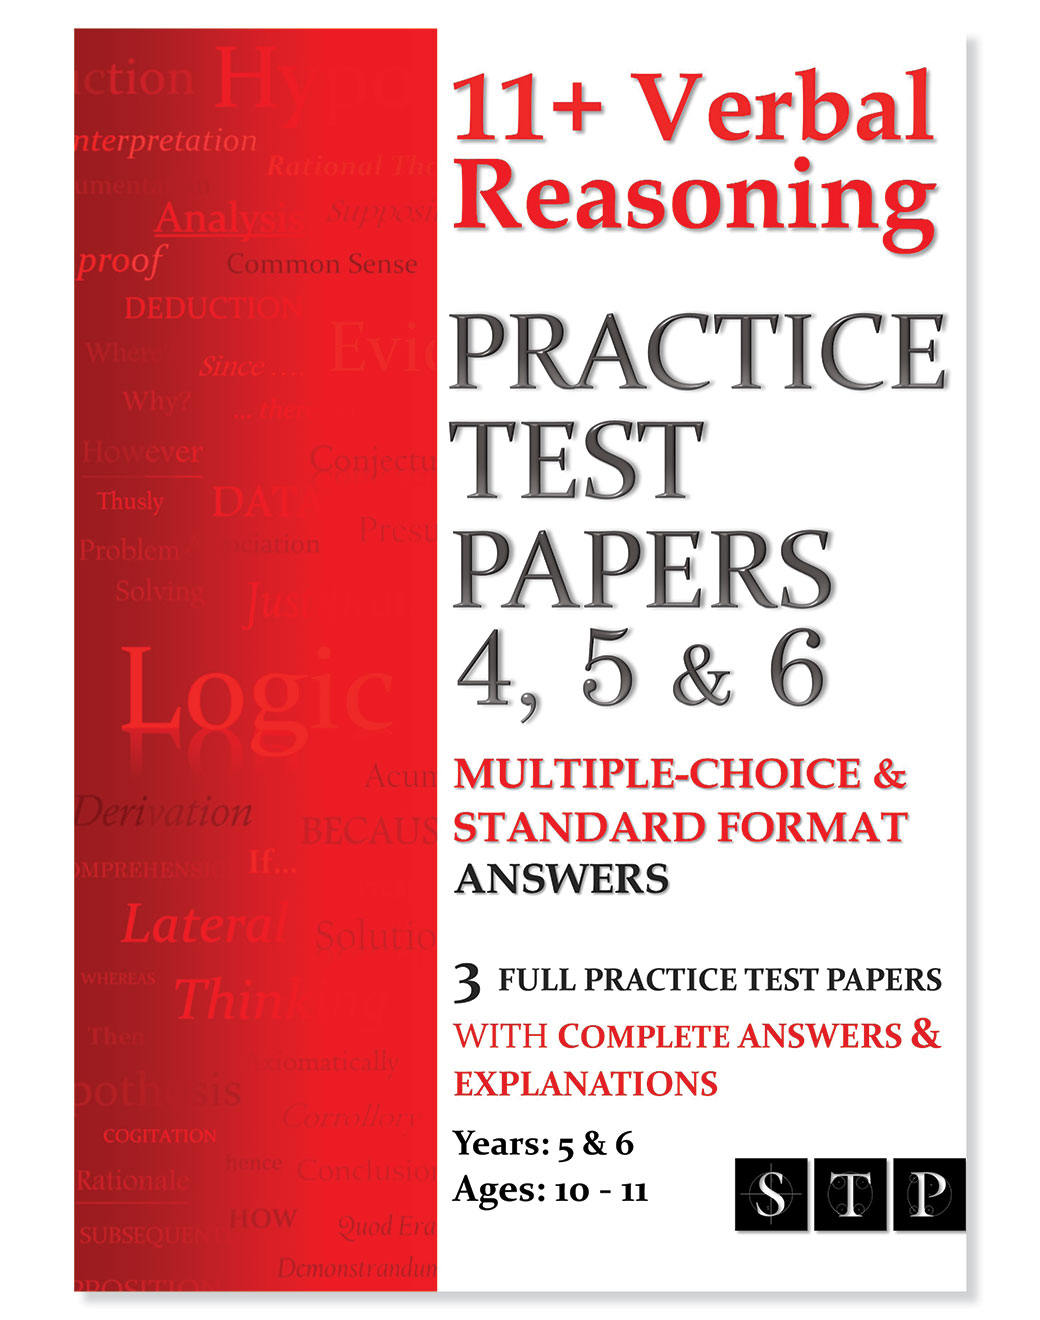 STP Books 11+ Verbal Reasoning Practice Test Papers 4, 5 & 6: Multiple-Choice & Standard Format Answers (Ages 10-11: Years 5 & 6)